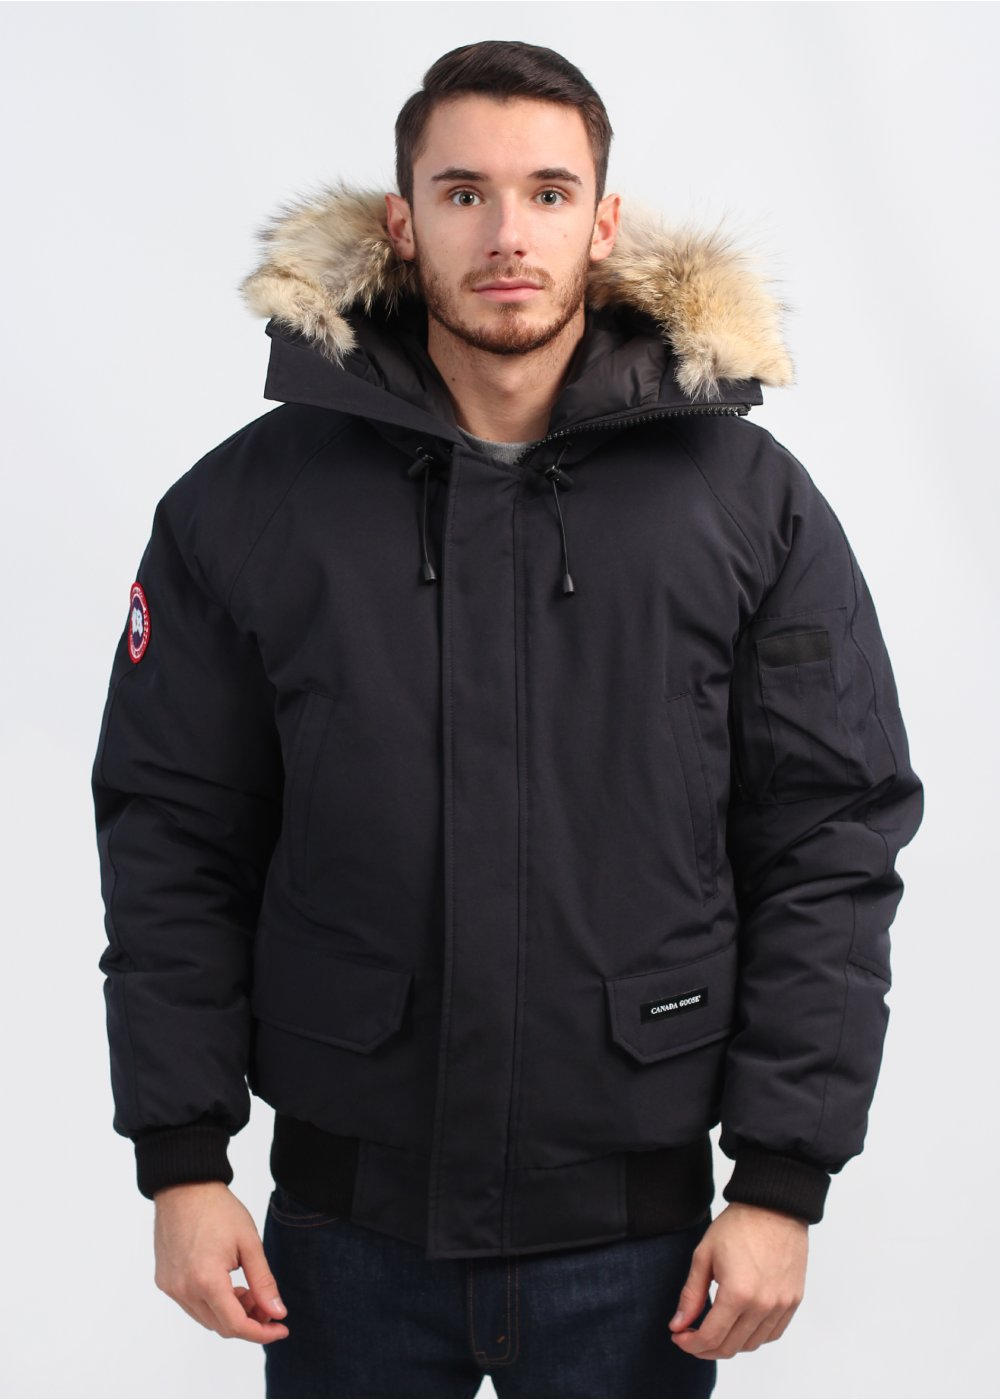 Chilliwack Bomber Jacket - Navy